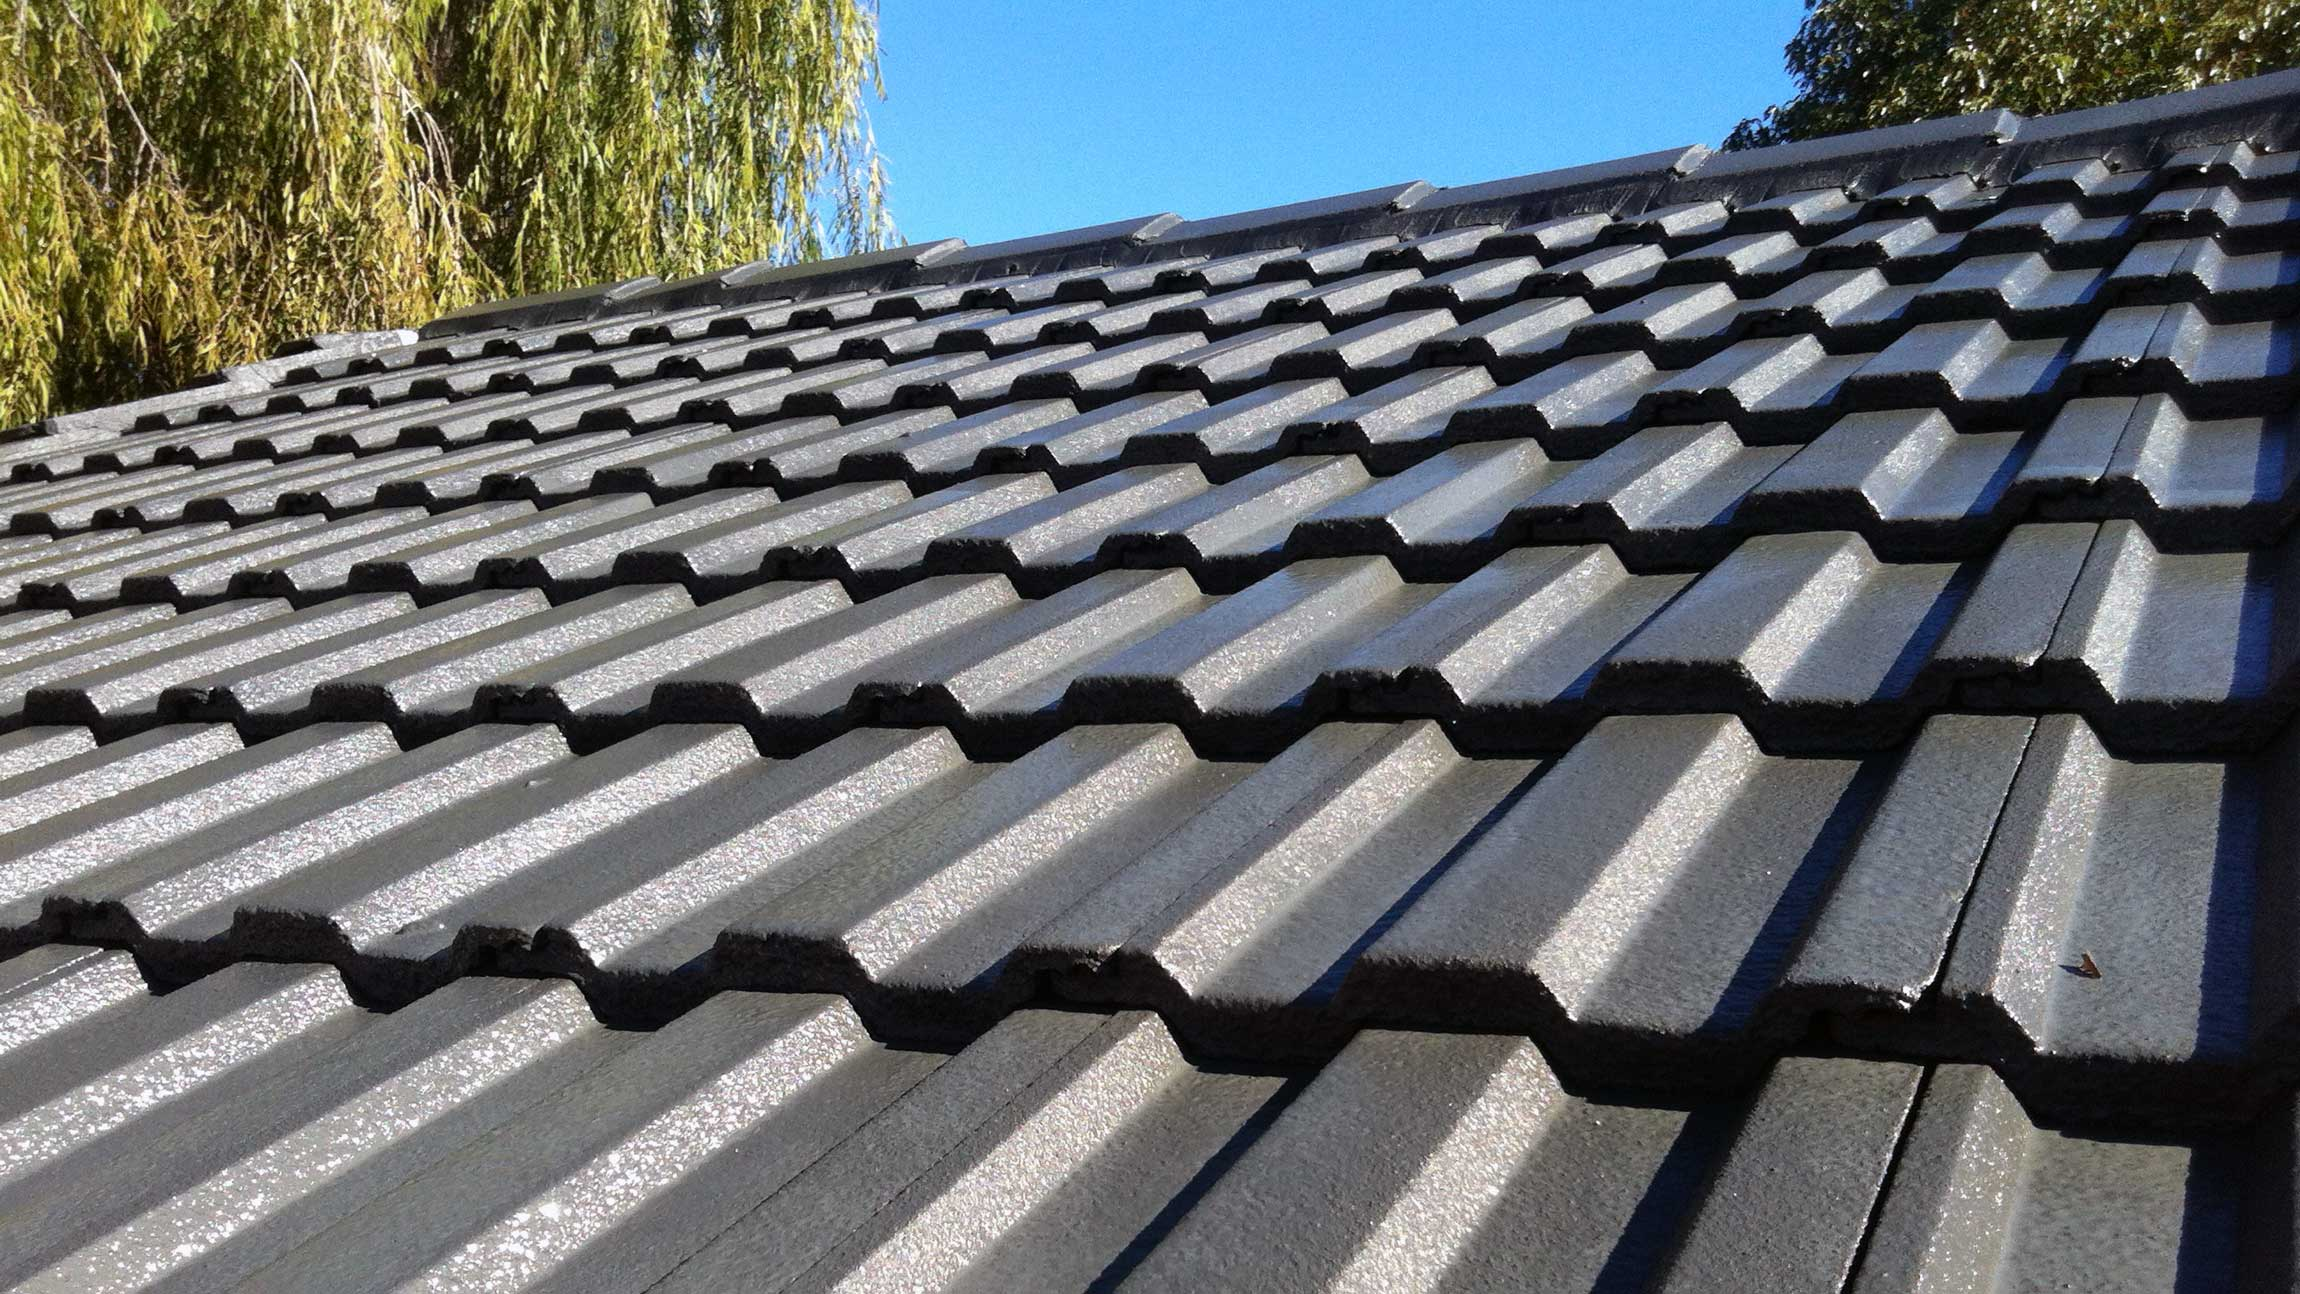 Concrete Tiles Western Counties Roofing